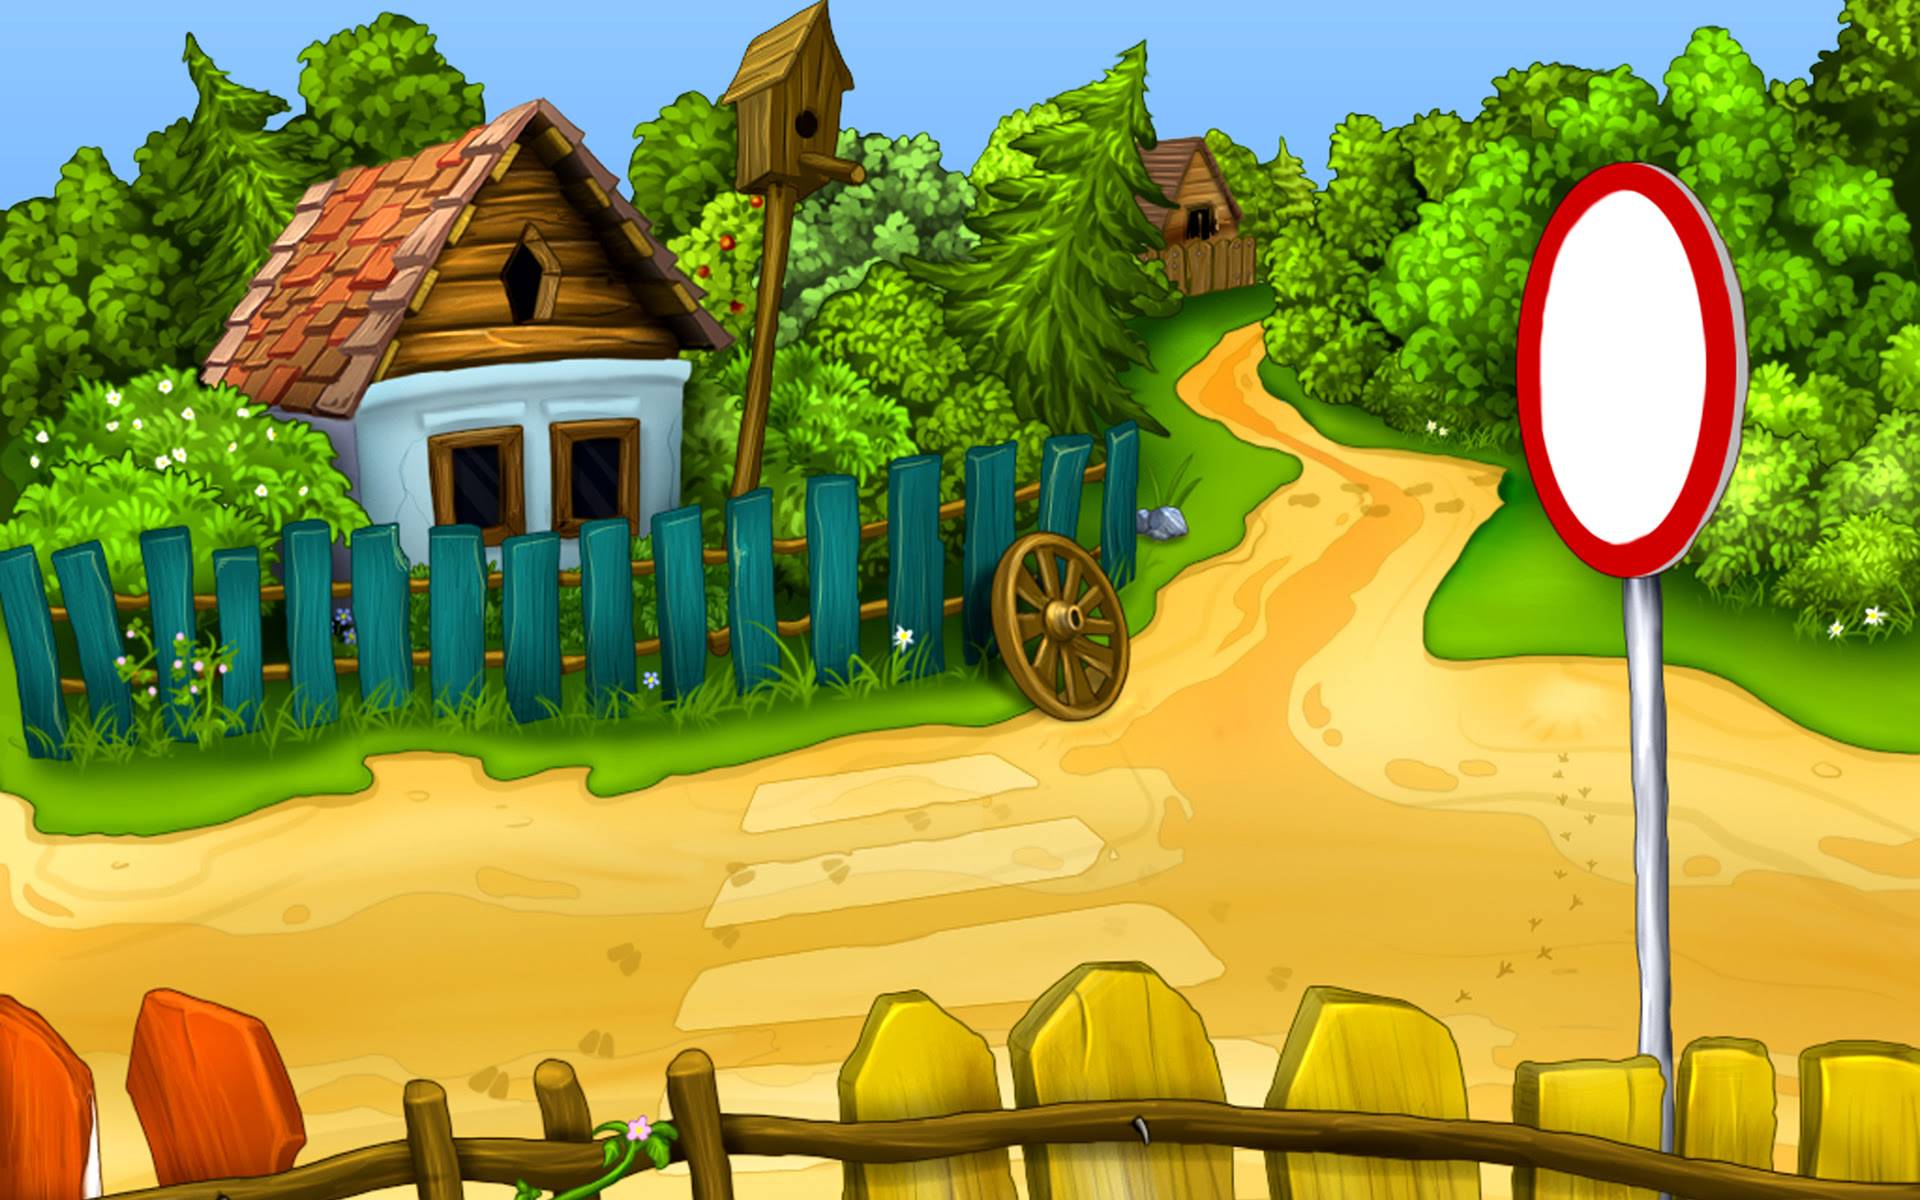 Download 99 Background Hd Kartun HD Gratis